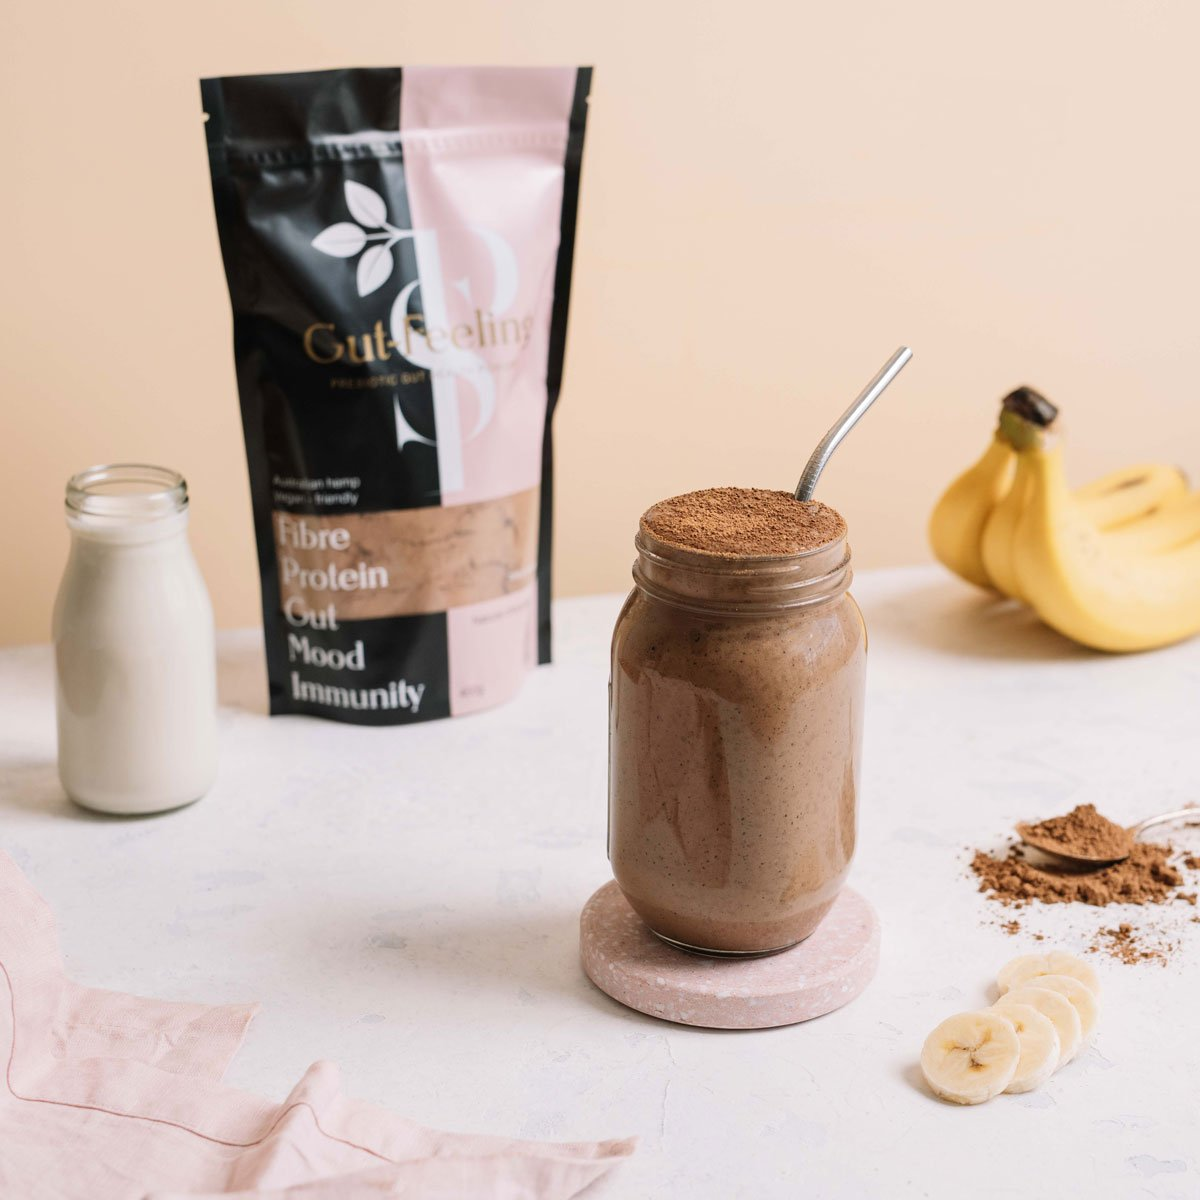 Plant-based Prebiotics with plant protein, fibre and organic raw cacao